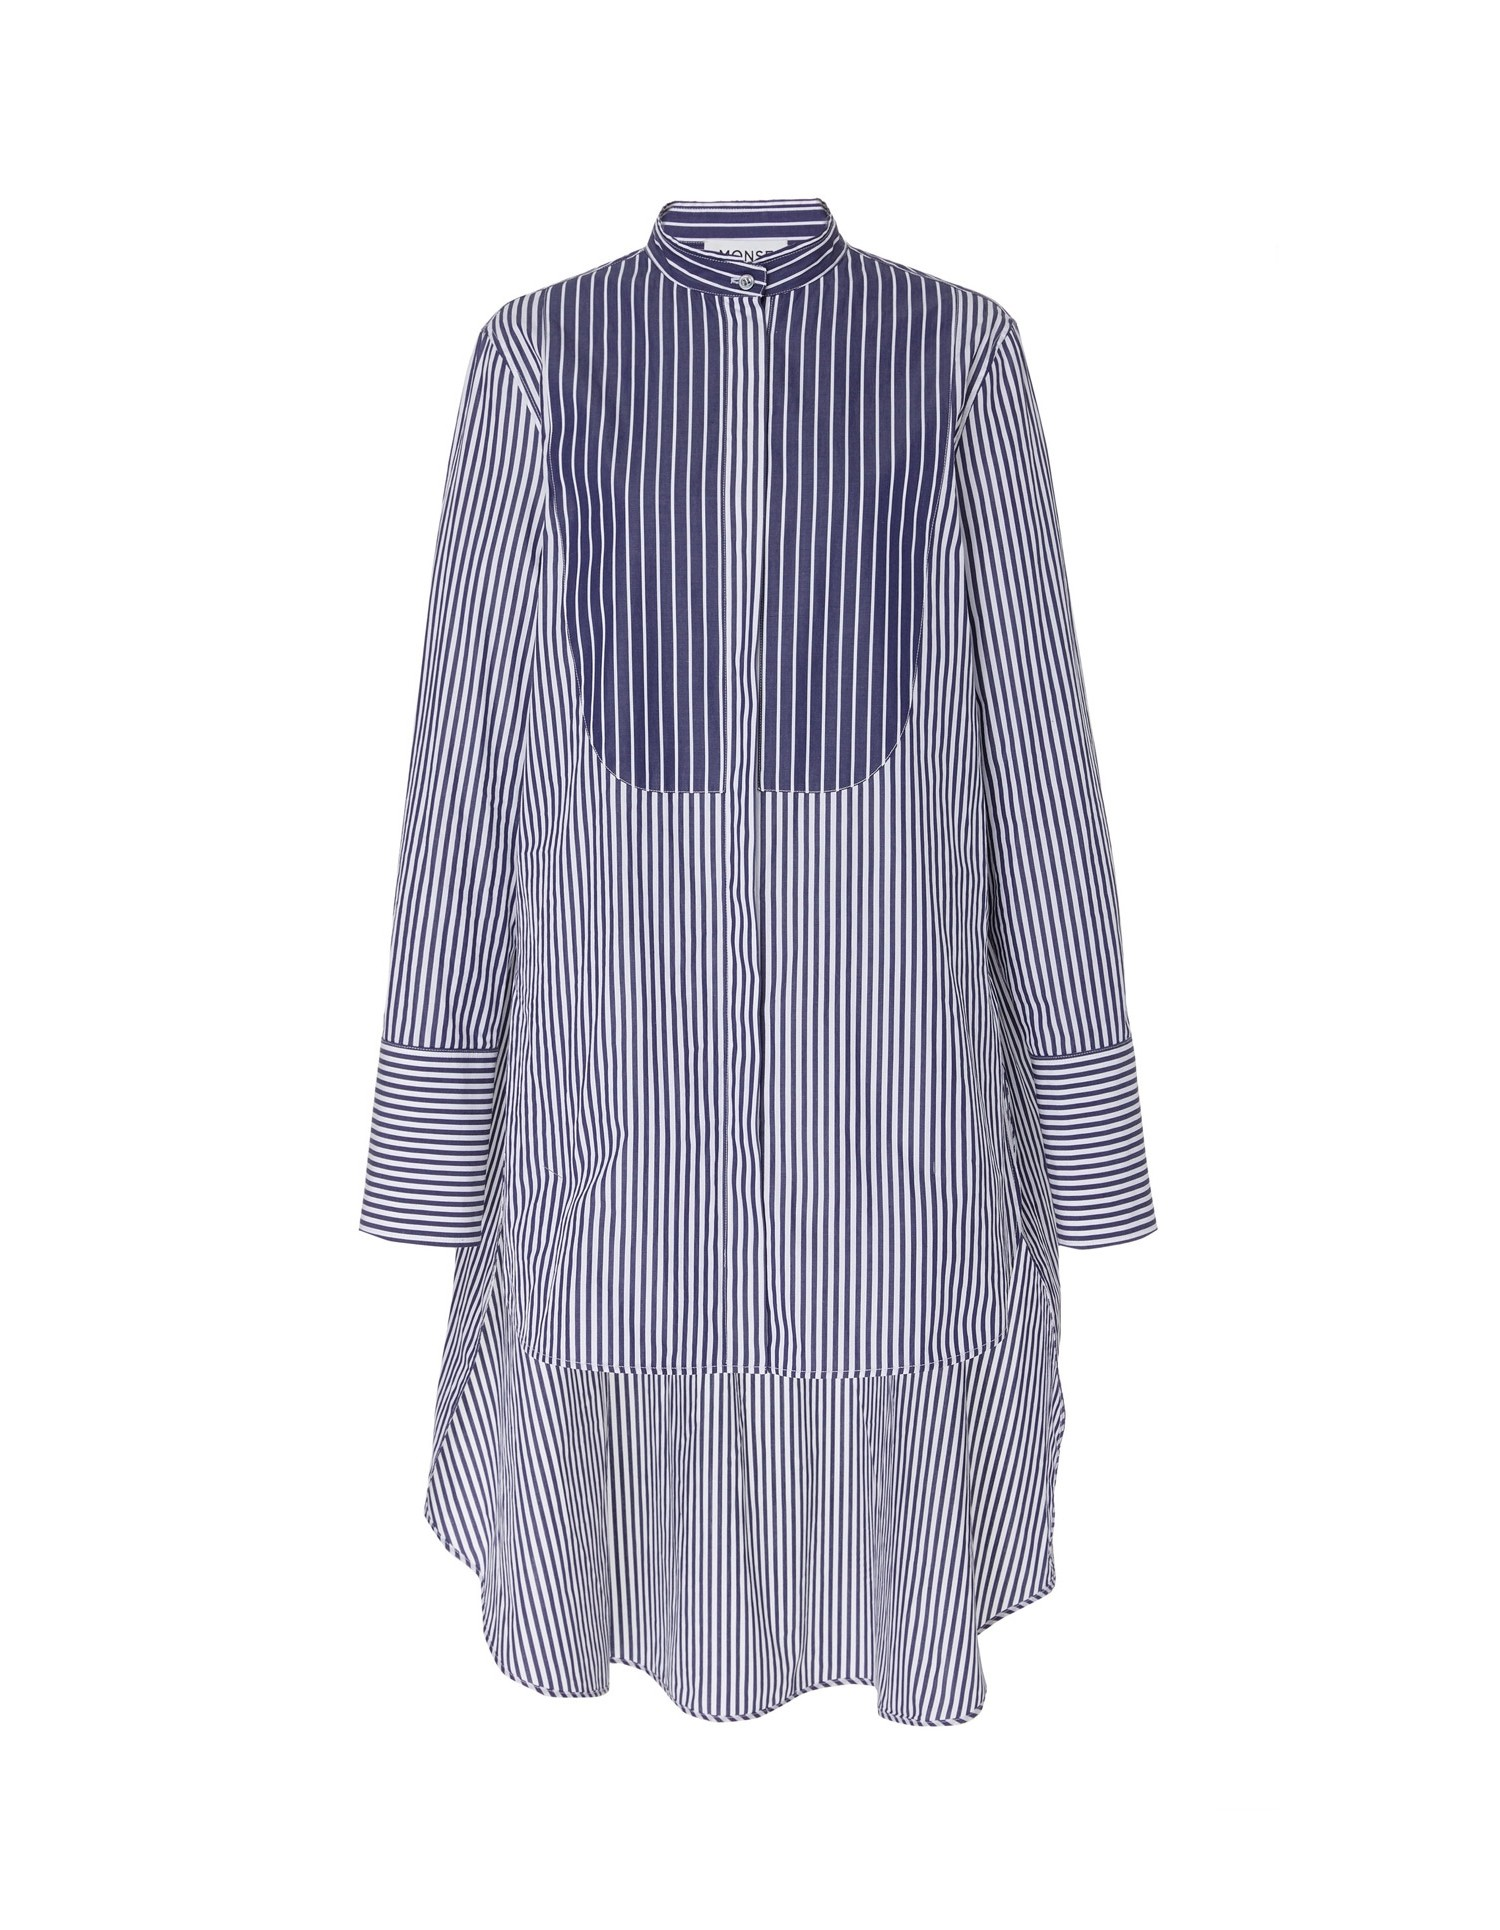 MONSE Typewriter Stripe Shirt Flat